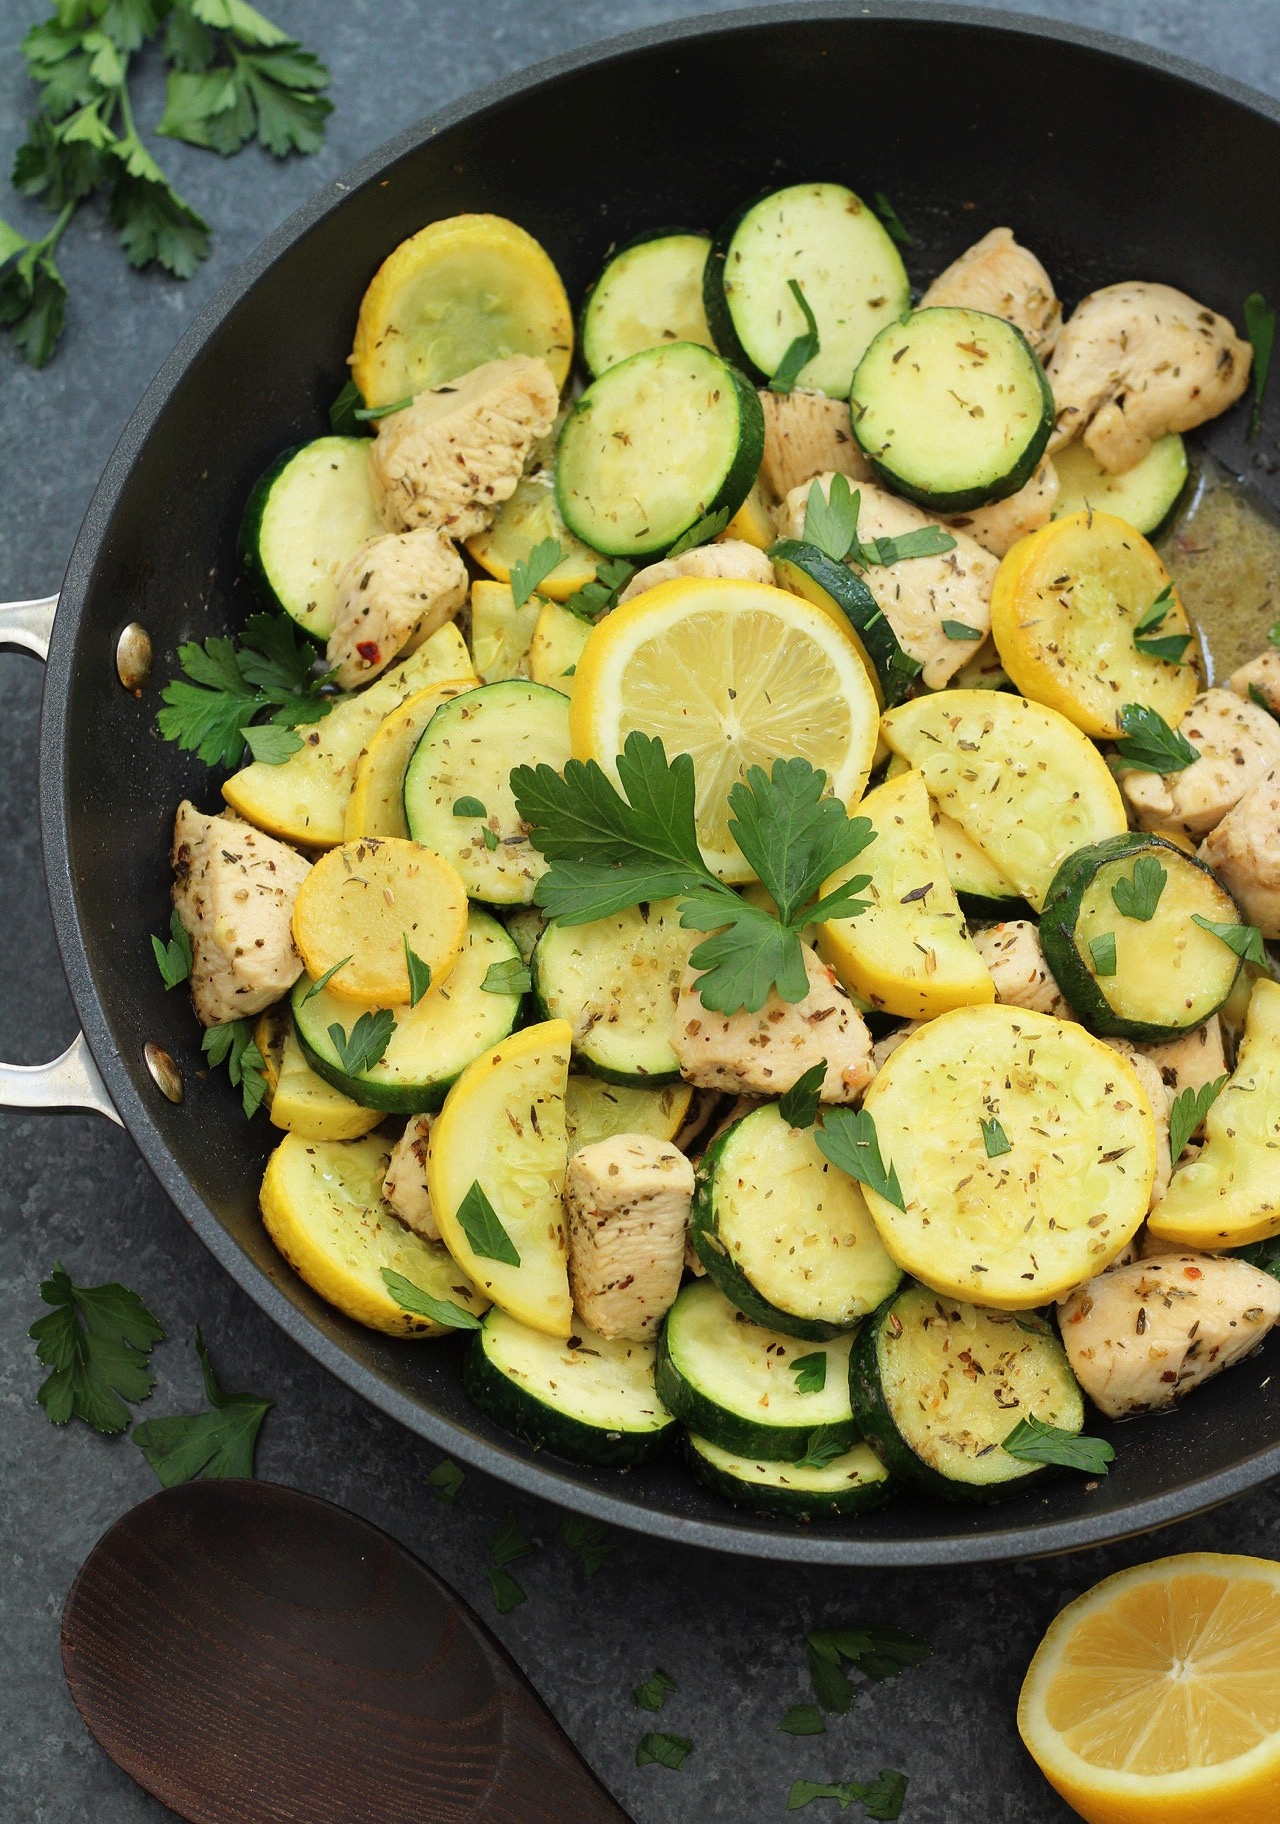 This Whole30 lemon chicken and squash skillet is Paleo, under 30 minutes, low carb and only made in one pot. This is a perfect summer dish for meal prep, or for a family friendly weeknight meal you won't have to heat up your kitchen for. #whole30lemonchicken #whole30onepot #paleochickenrecipes #whole30chickenrecipes